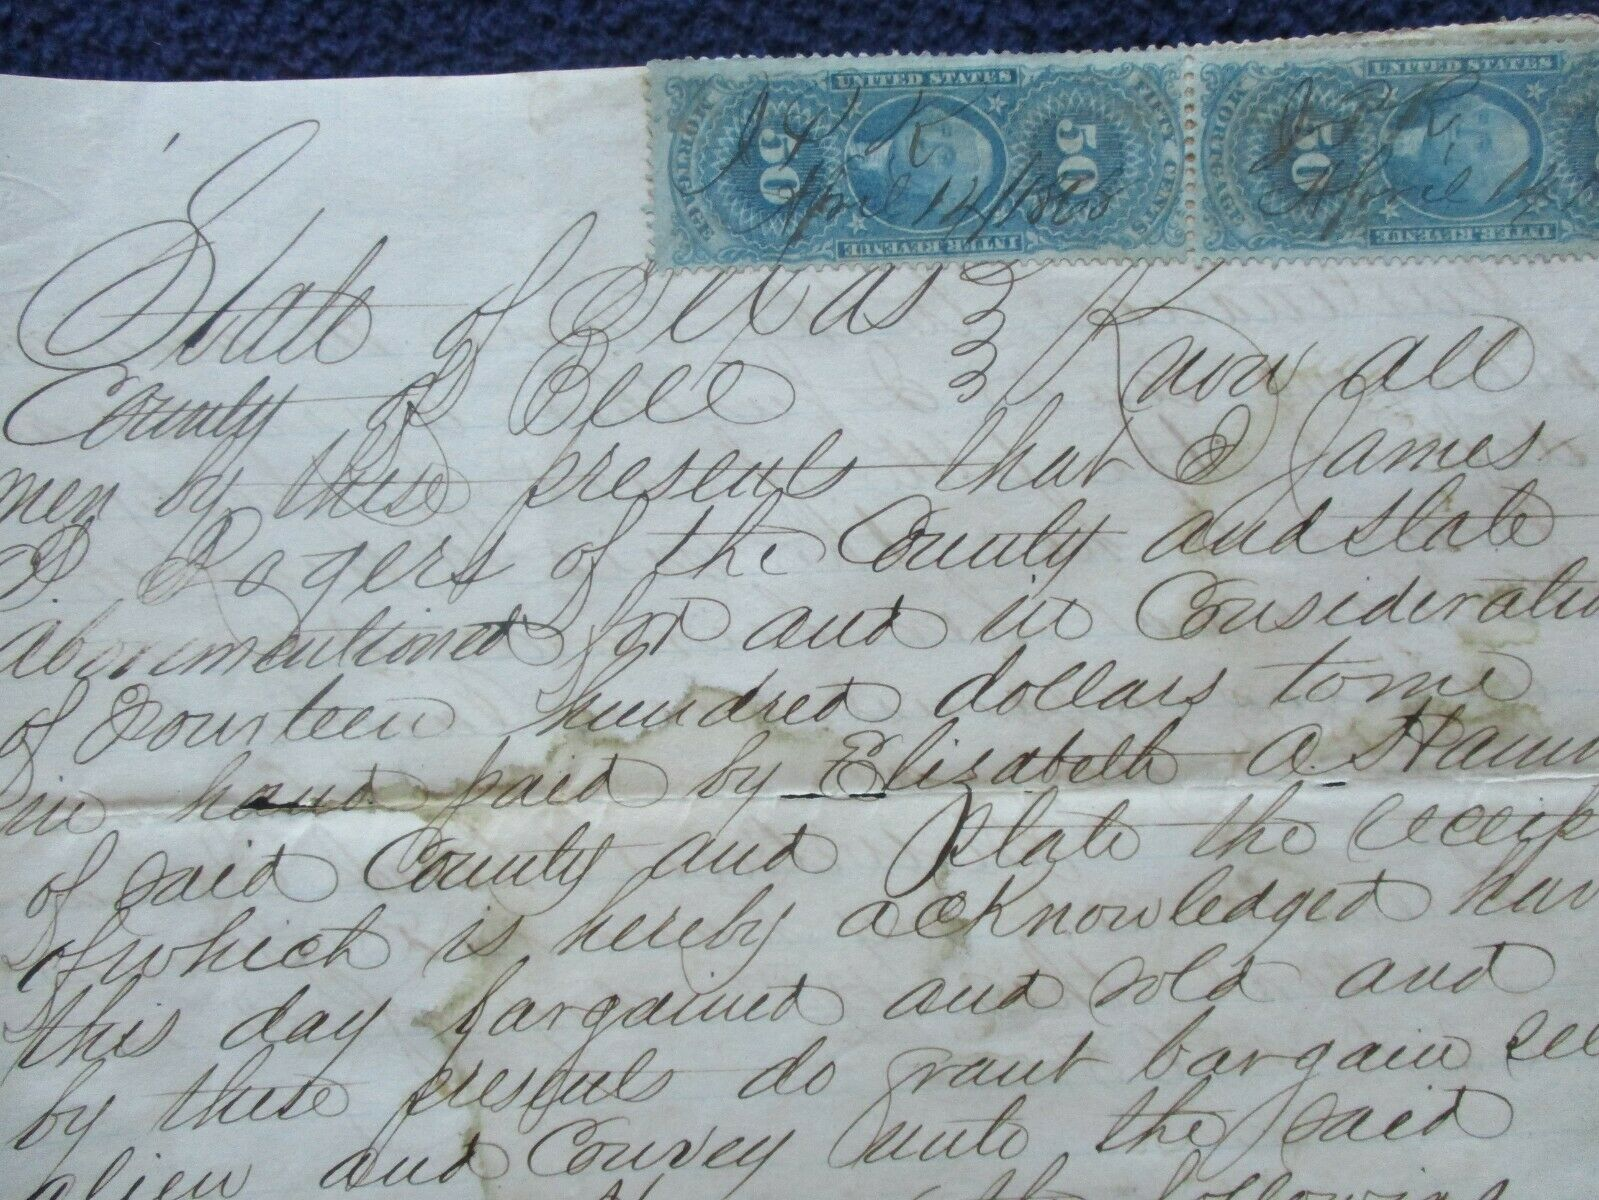 1868 Belton,Texas James Leach,James Rogers Signed Deed,NICE BLUE REV. Stamps  - $49.99